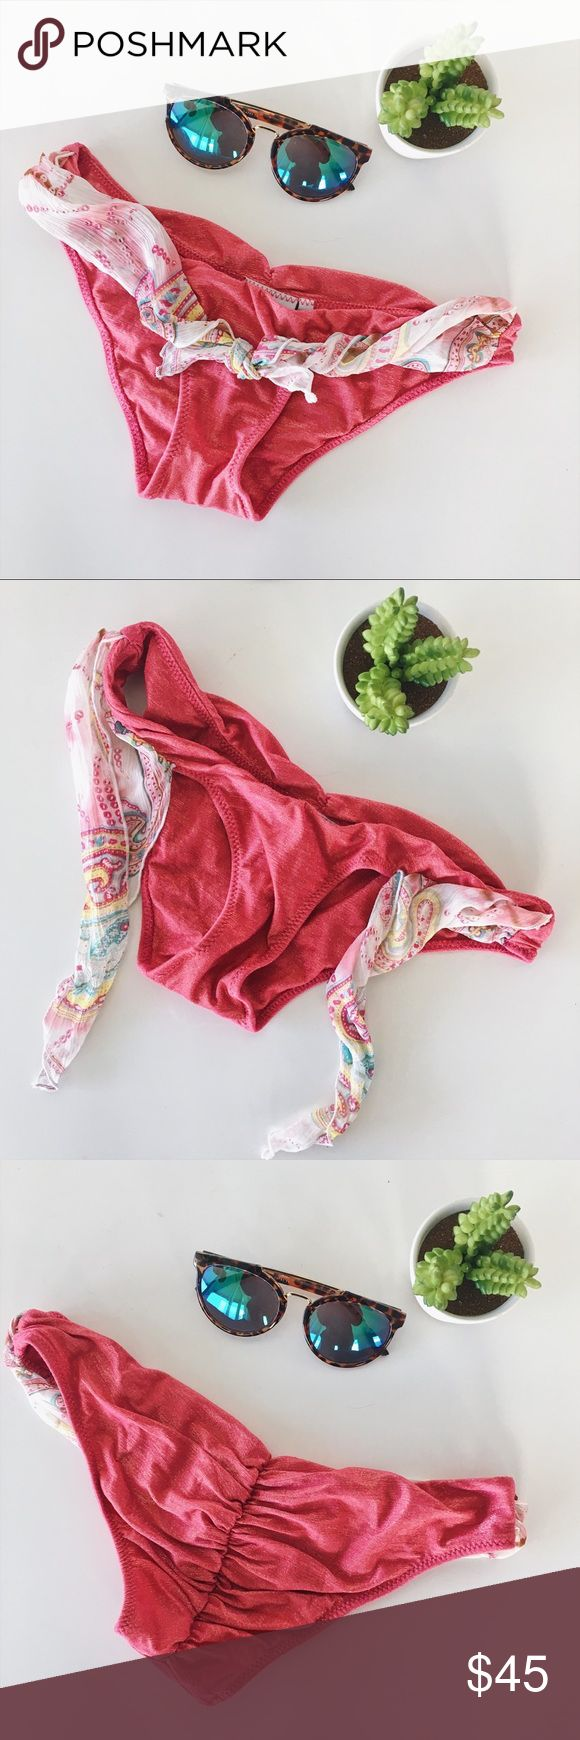 Beach Bunny Swim • NWOT pink bikini bottoms These Beach Bunny Swimwear bikini bottoms are super cute and unique. These have a gorgeous dark pink color with golden metallic threads. The back has a ruched butt which really enhances your curves. The front has a cute scarf like tie front detail. These would be perfect to mix and match with a neutral top. New condition without tags. Size small. Beach Bunny Swim Bikinis